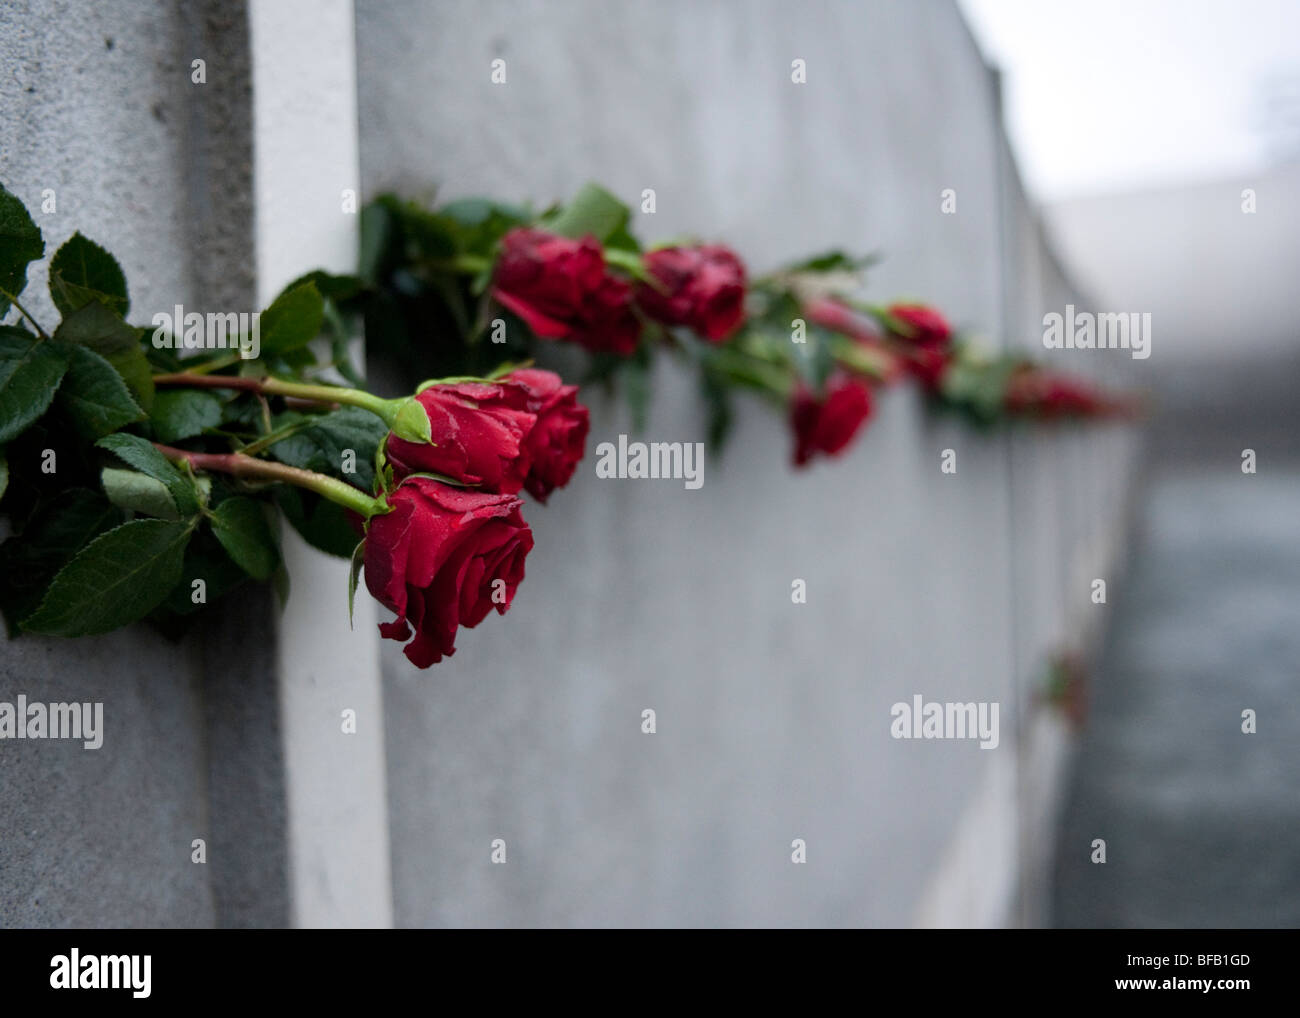 red roses in Berlin Wall on 20th anniversary of the fall of the wall to commemorate those who died trying to escape - Stock Image